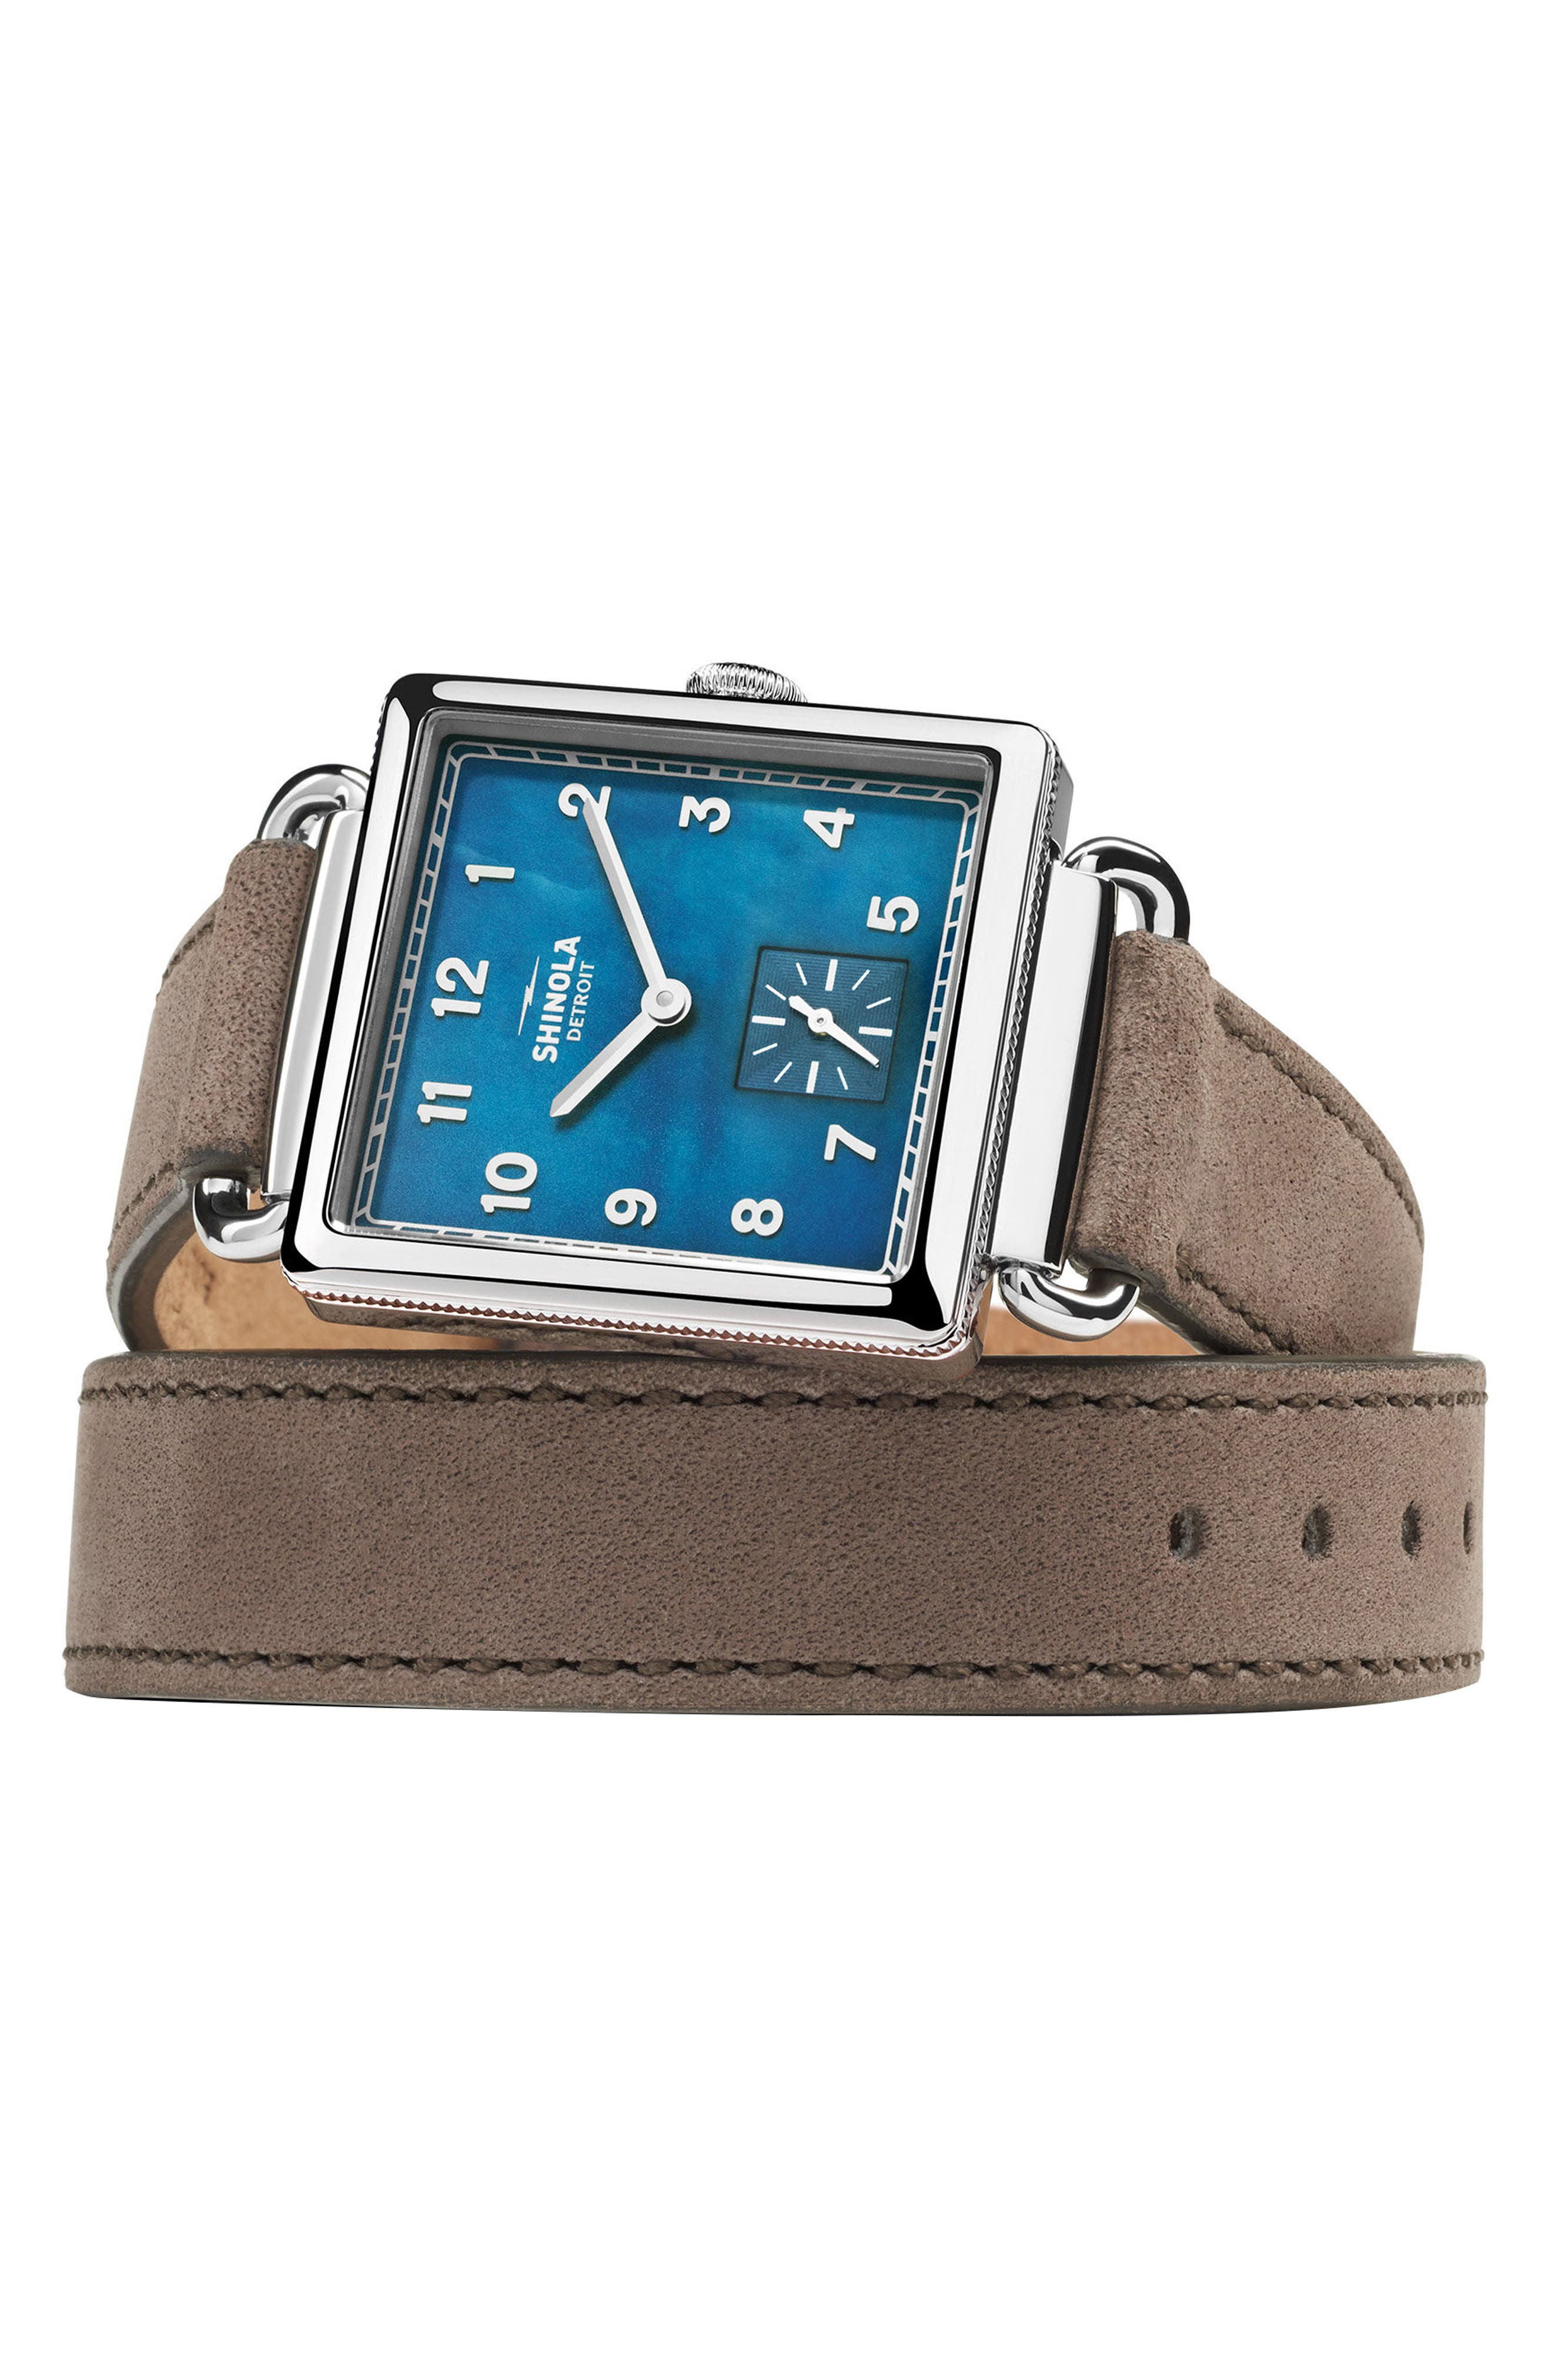 SHINOLA, Cass Leather Strap Watch, 28mm, Alternate thumbnail 3, color, GREY/ NAVY MOTHER OF PEARL